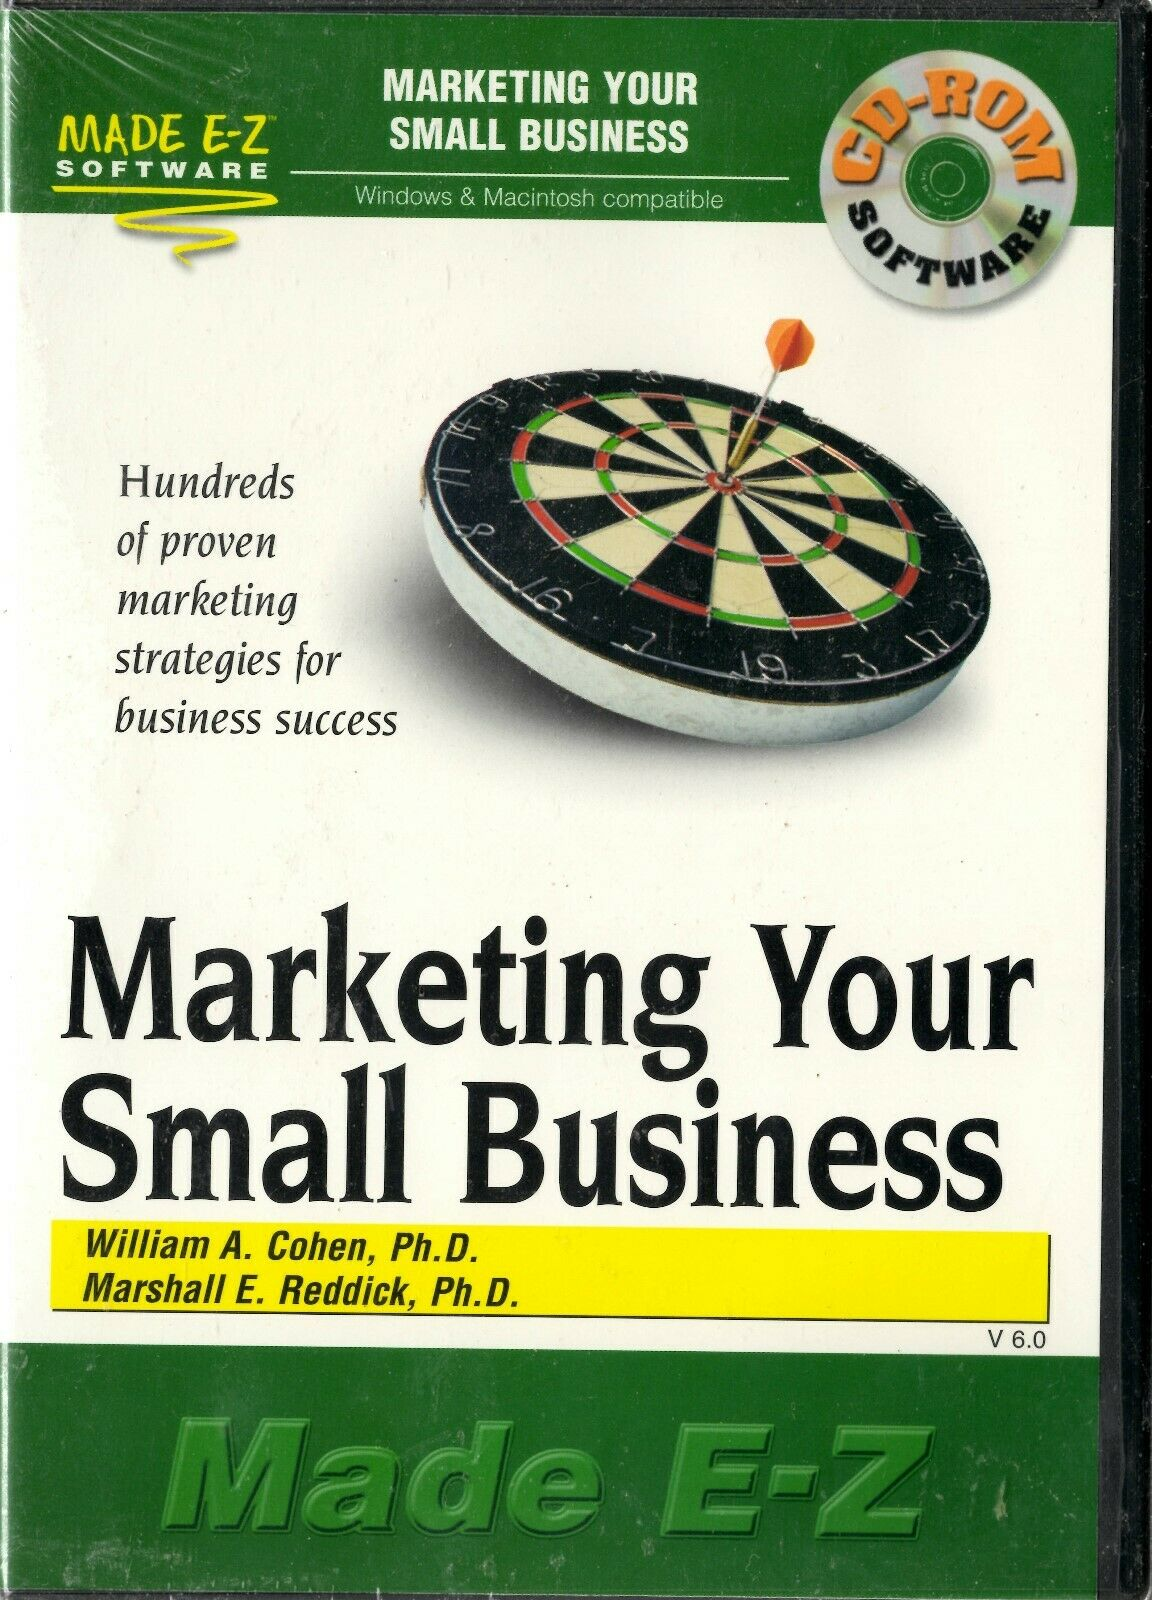 Made E-Z Software - Marketing Your Small Business - CD-ROM 2001